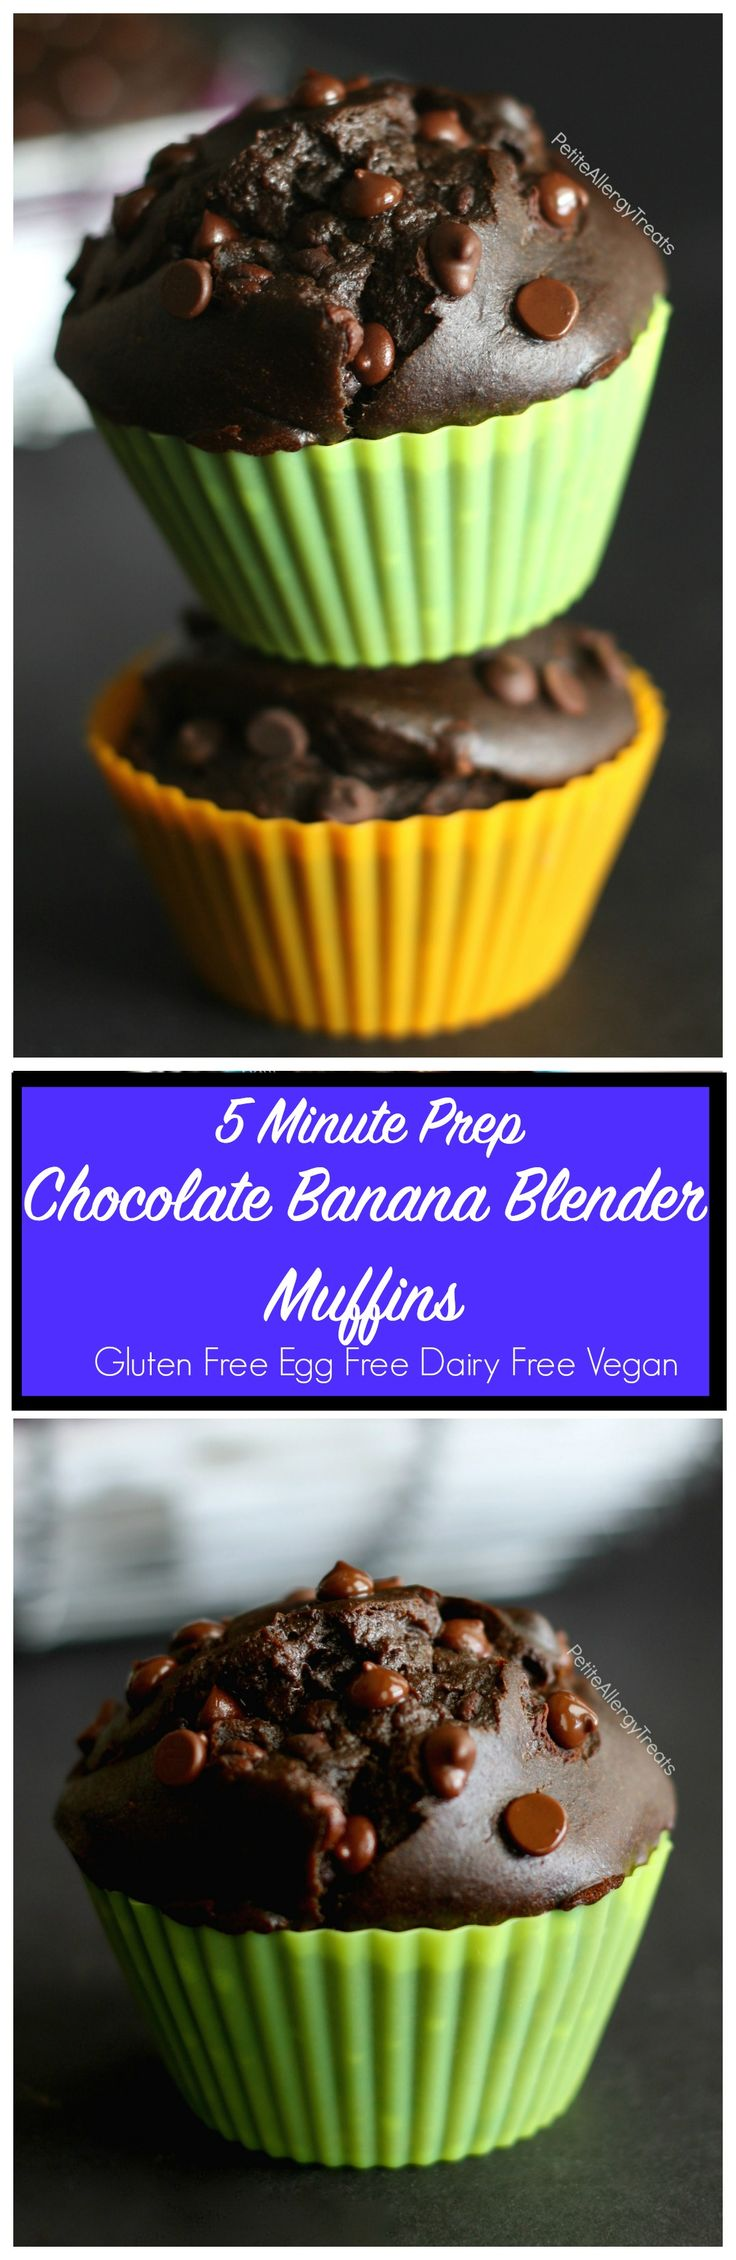 Gluten Free Blender Chocolate Banana Muffins Recipe (vegan) - Easy gluten free muffins packed with banana, avocado and seed butter. Egg free and dairy free. Food Allergy friendly.